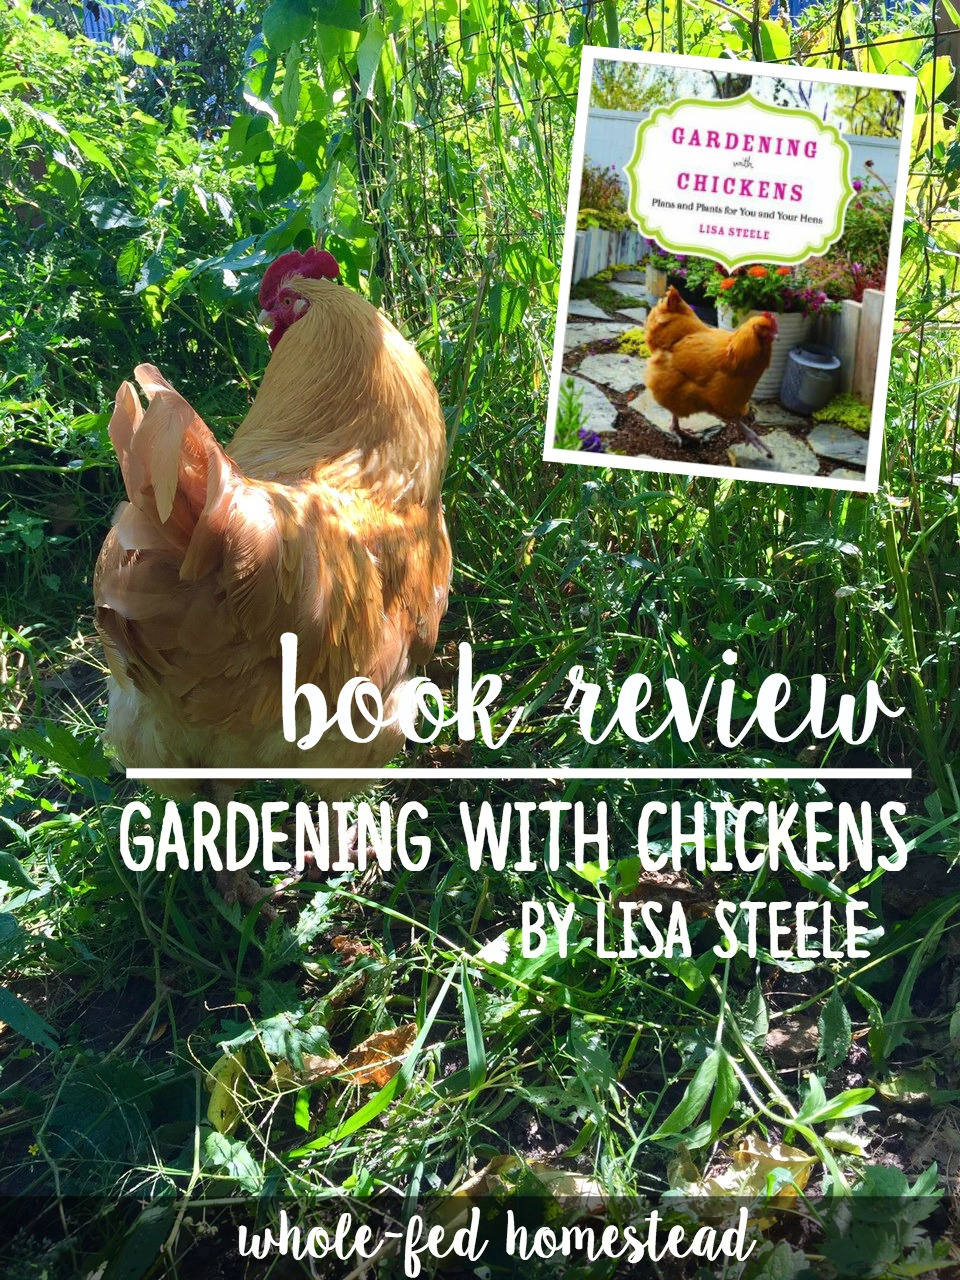 Gardening with Chickens by Lisa Steele: Book Review